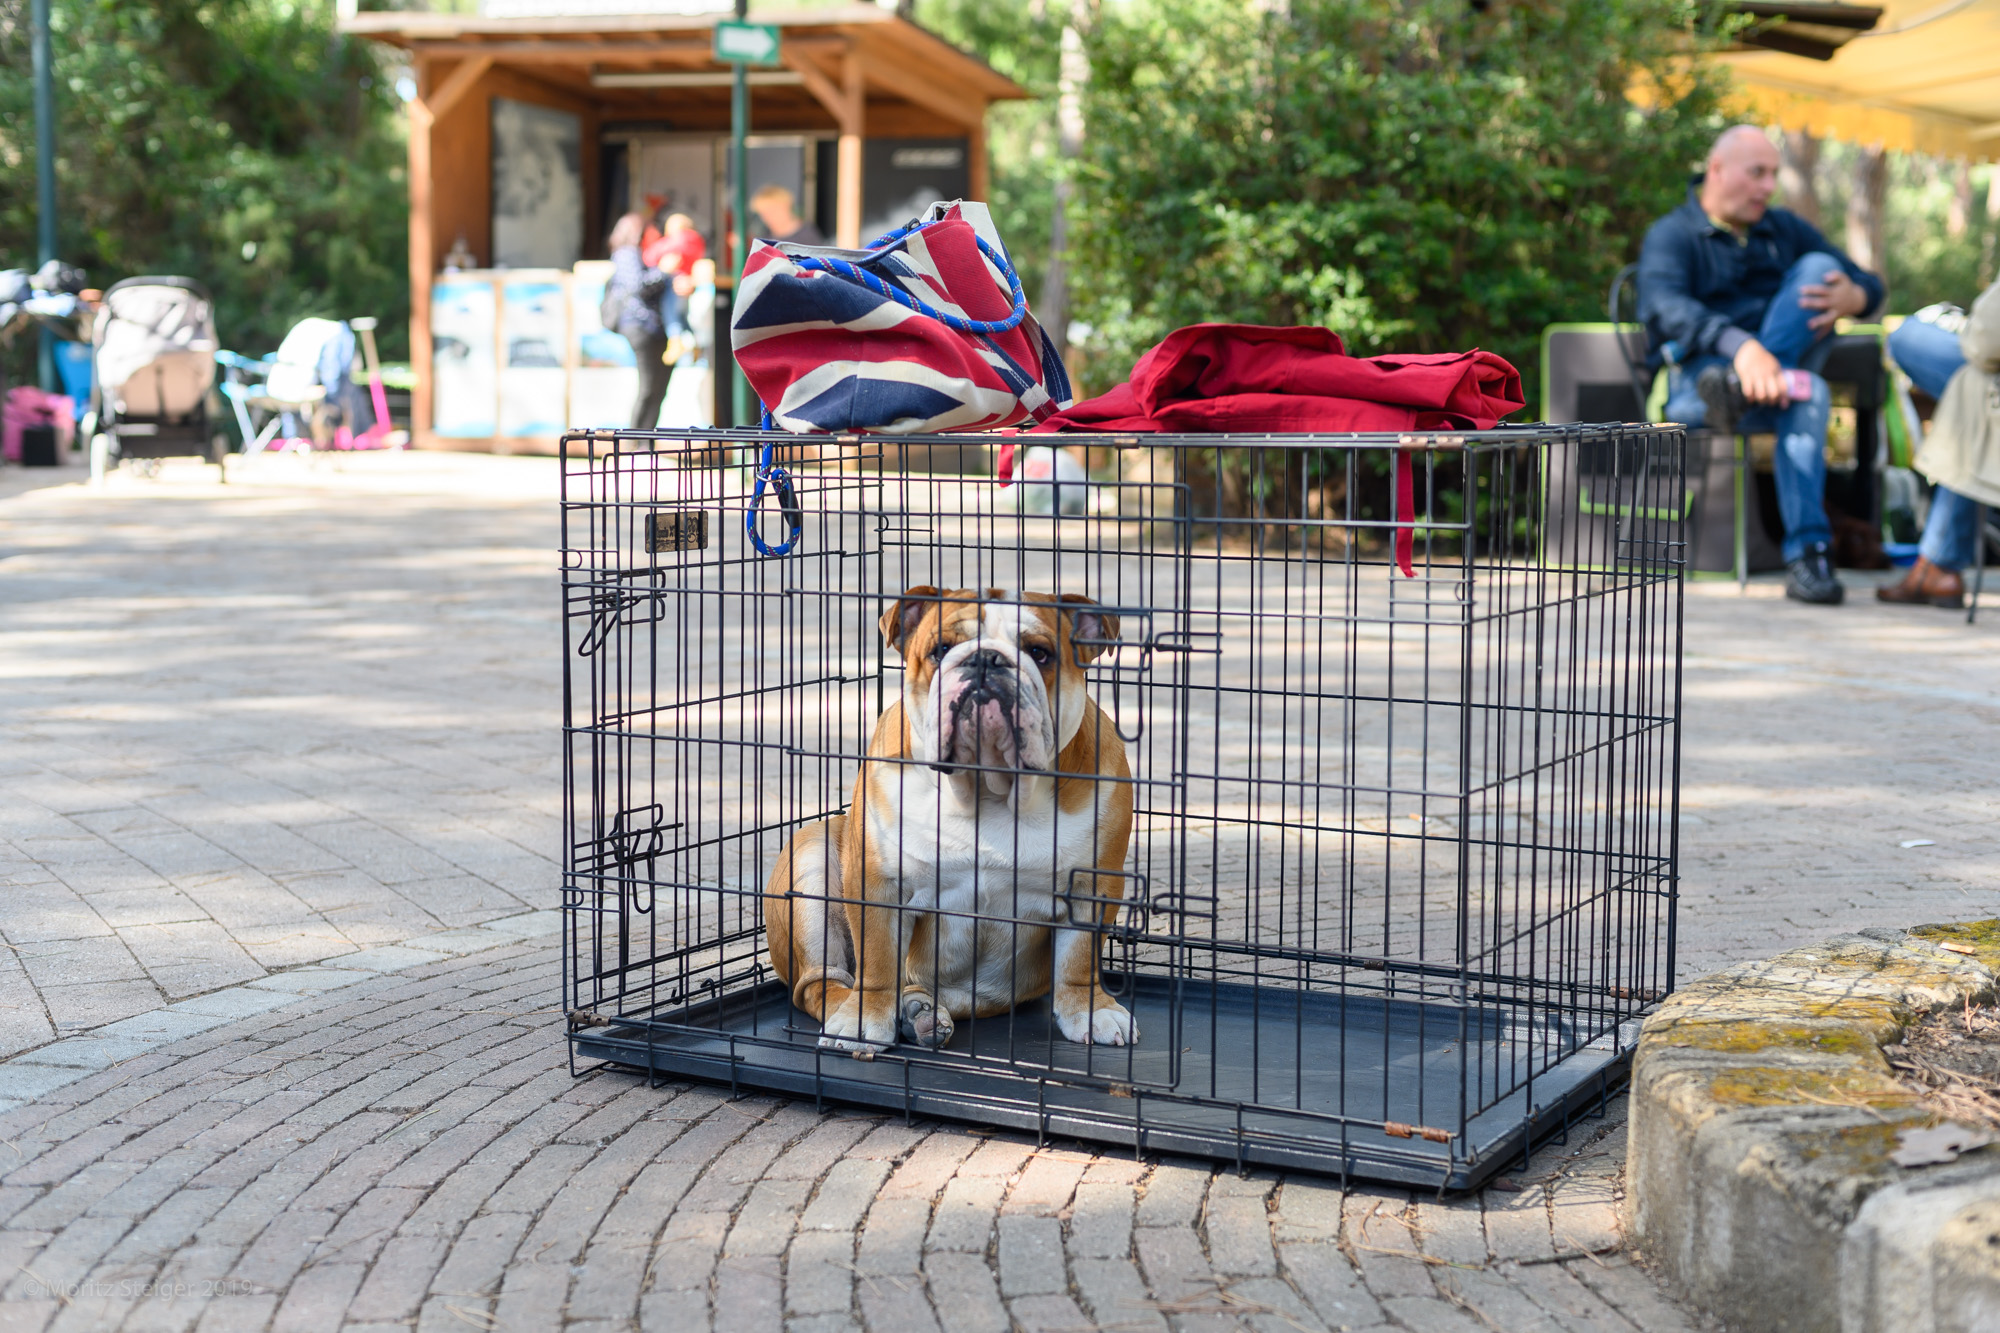 Caged bulldog